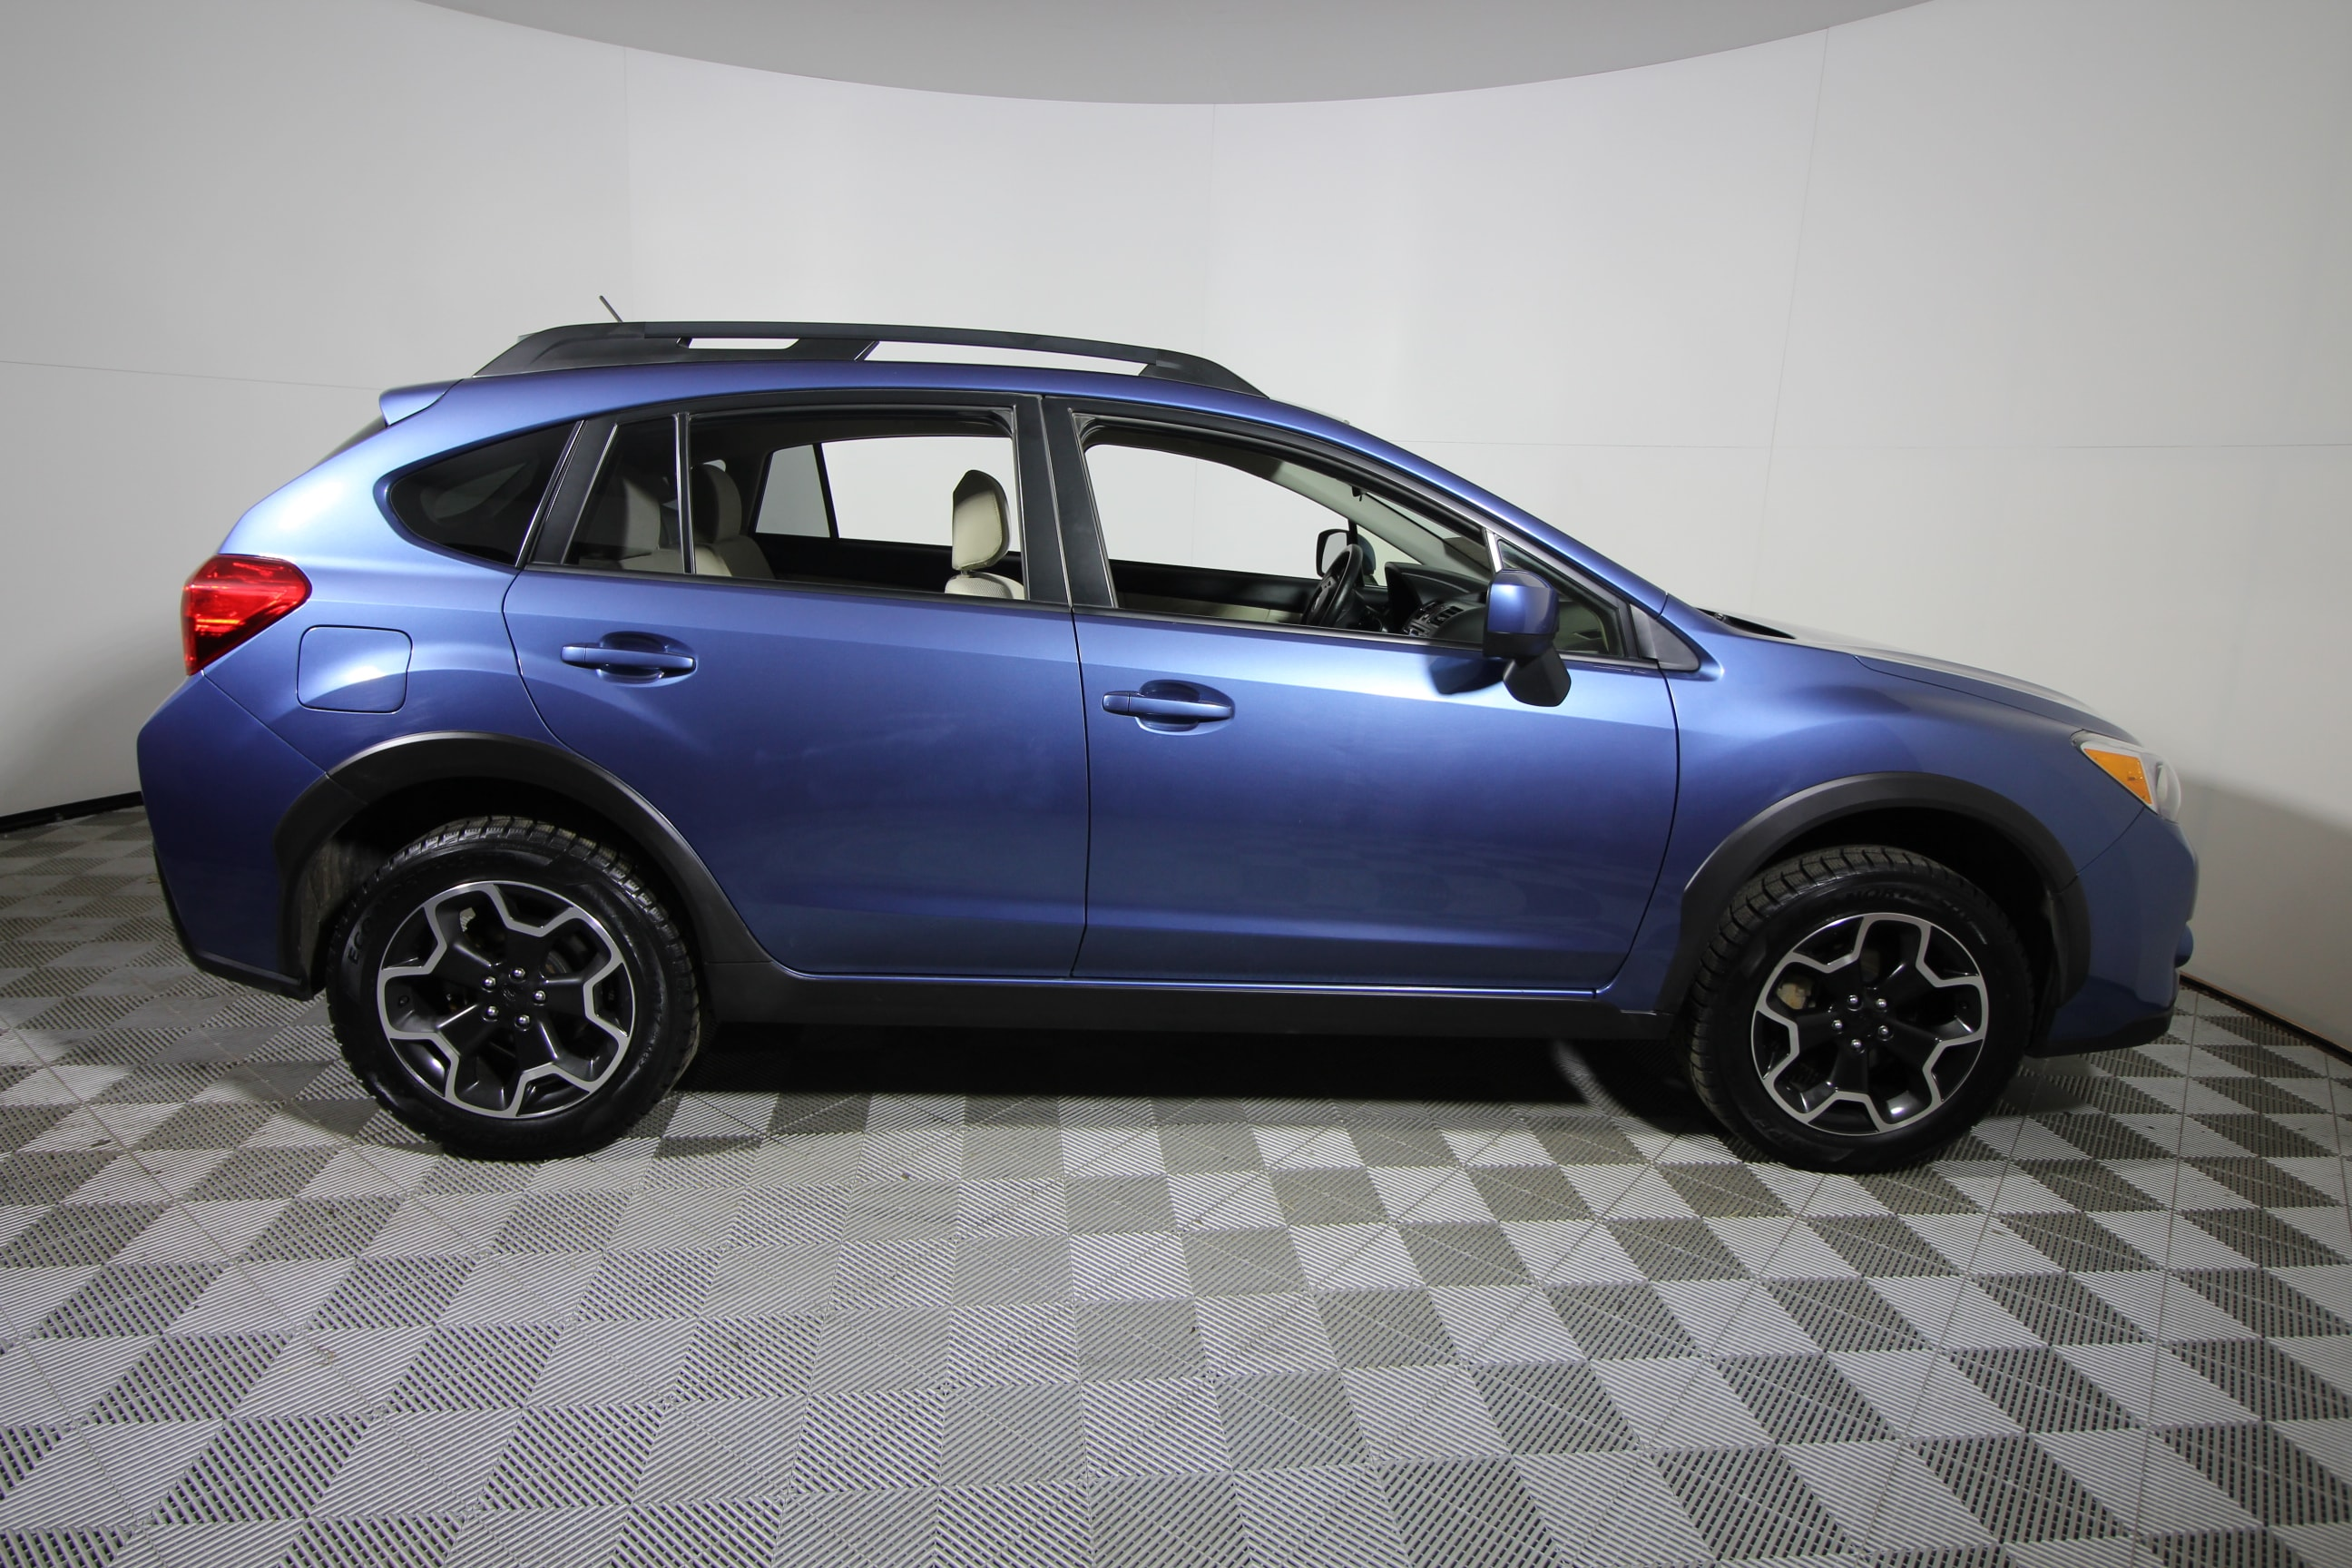 2014 subaru xv crosstrek used 16990. Black Bedroom Furniture Sets. Home Design Ideas